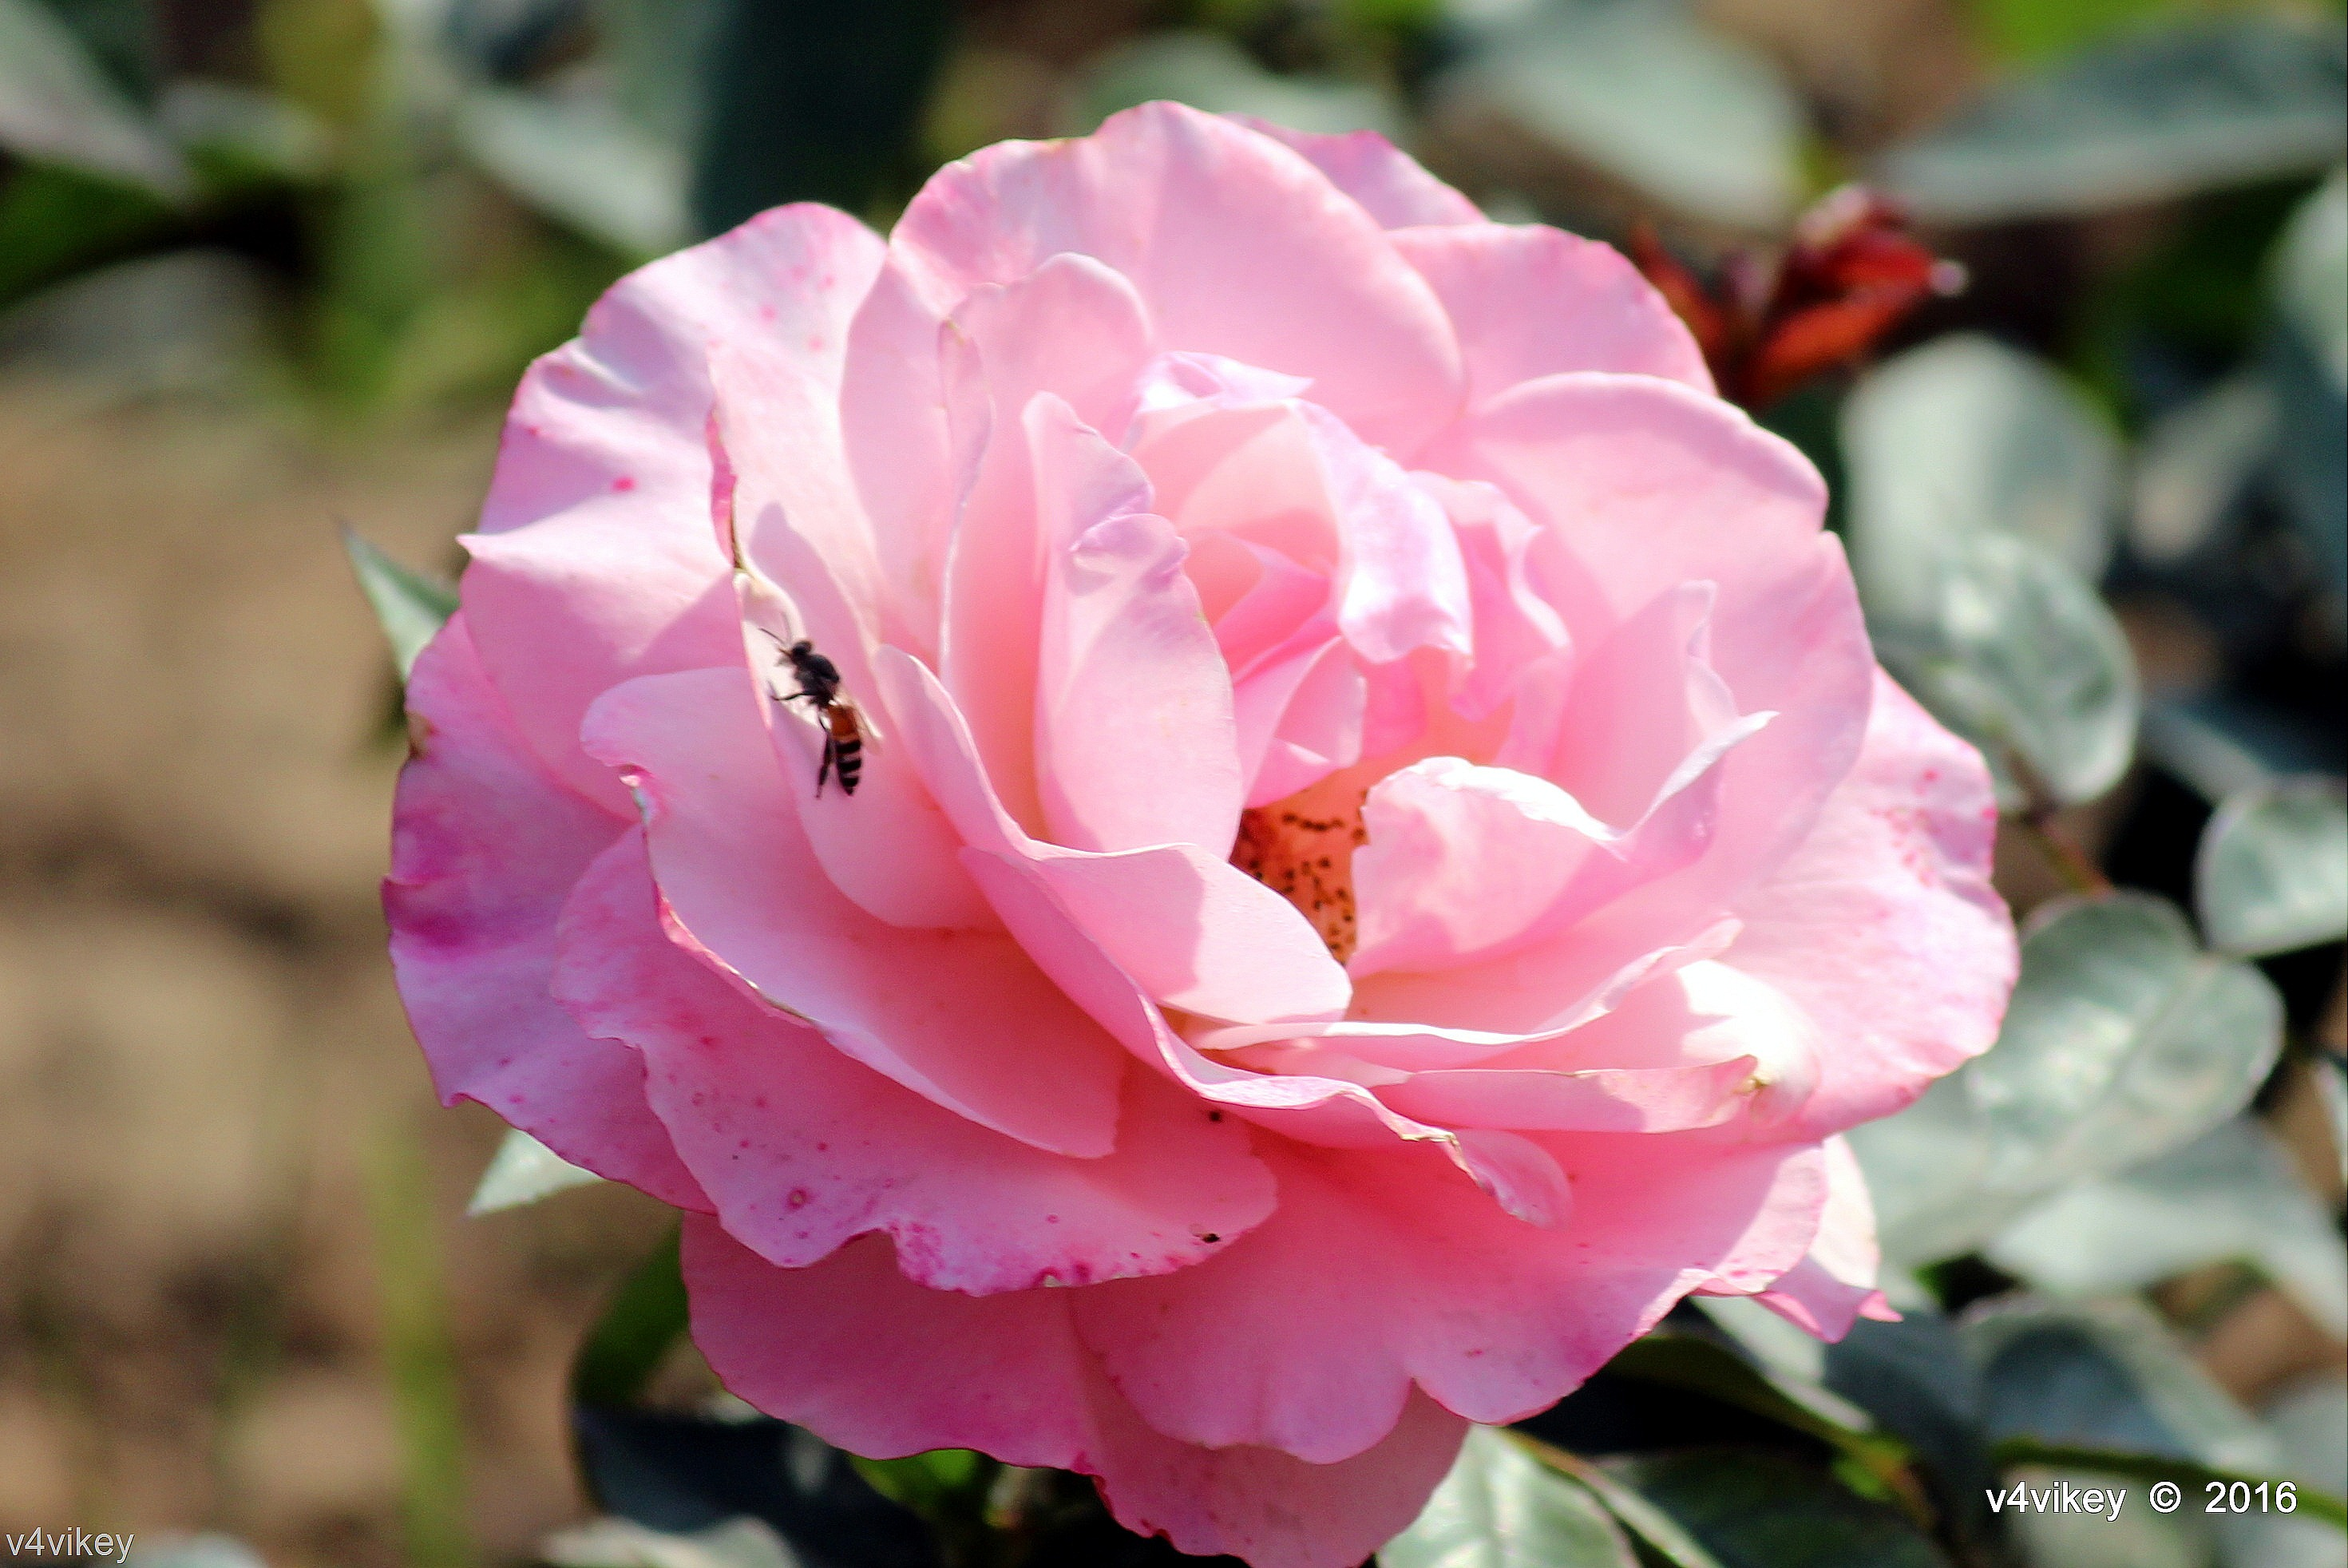 Roses Wallpaper And Quote Lovely Pink Rose Flower Wallpaper Tadka